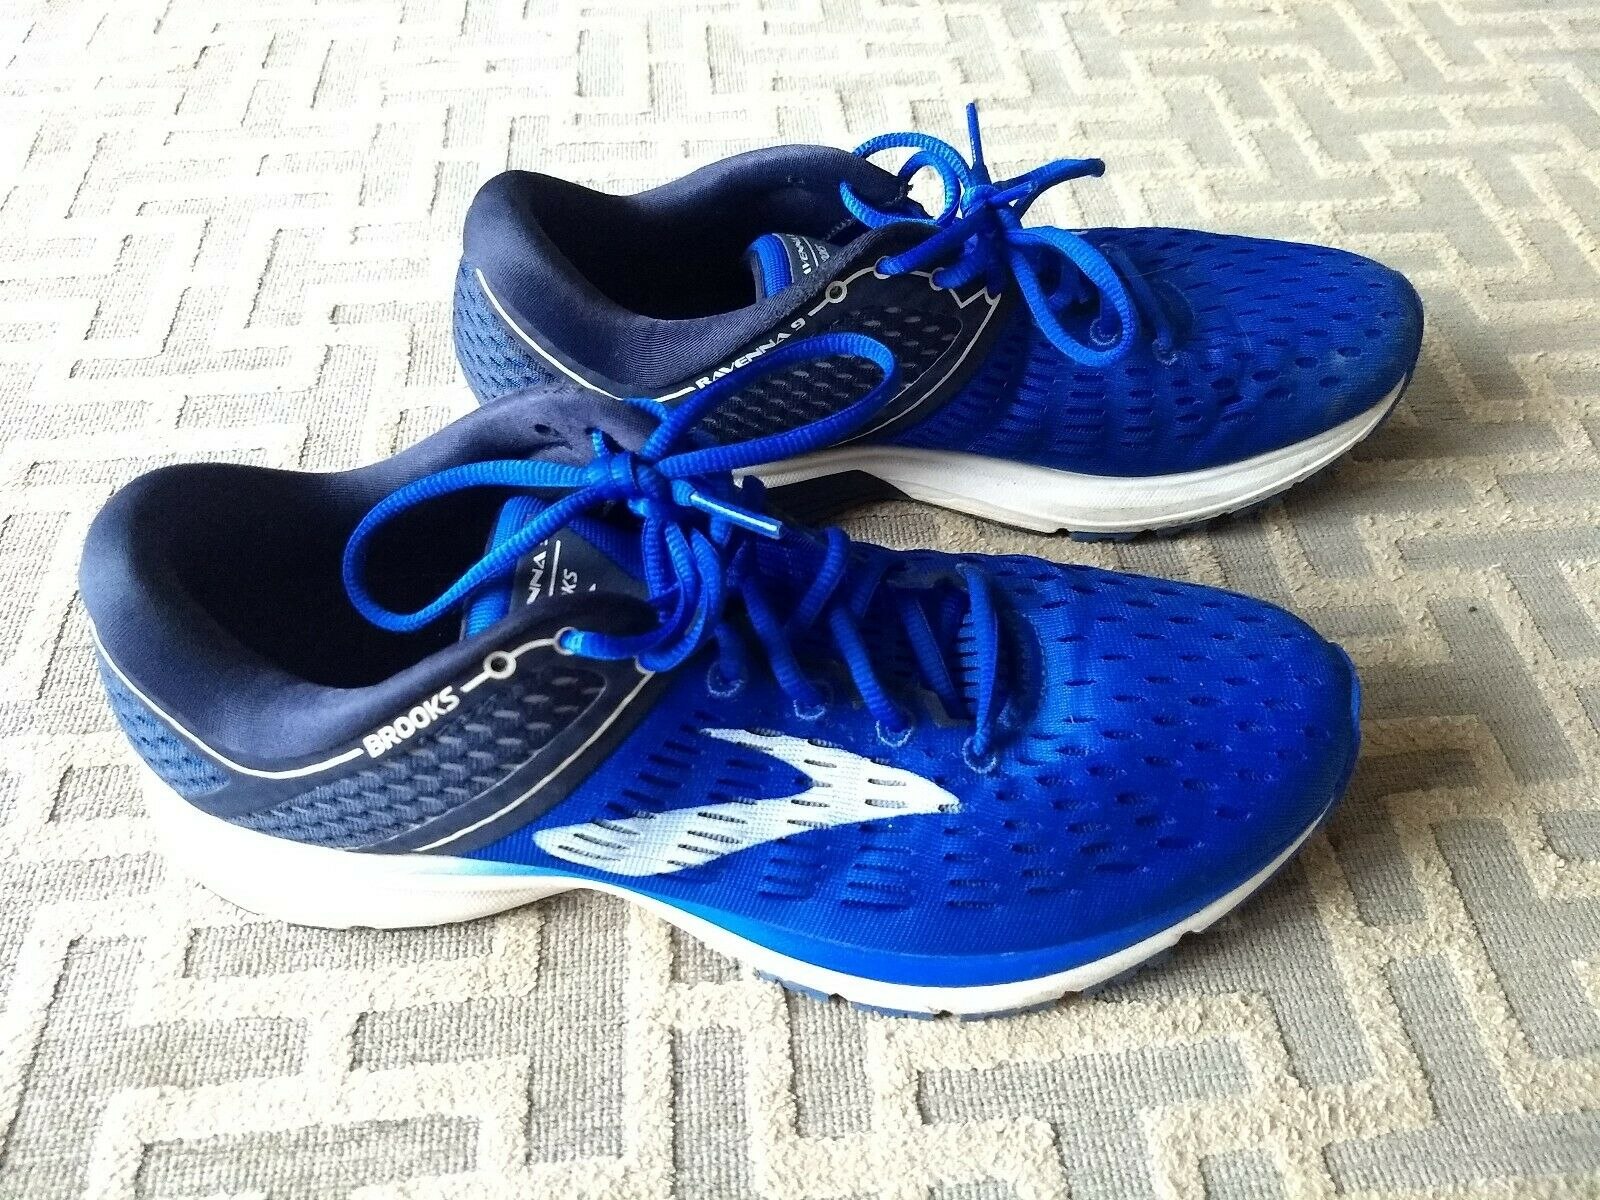 Men's Brooks Bredhers Ravenna 9 Running shoes bluee Sz 10